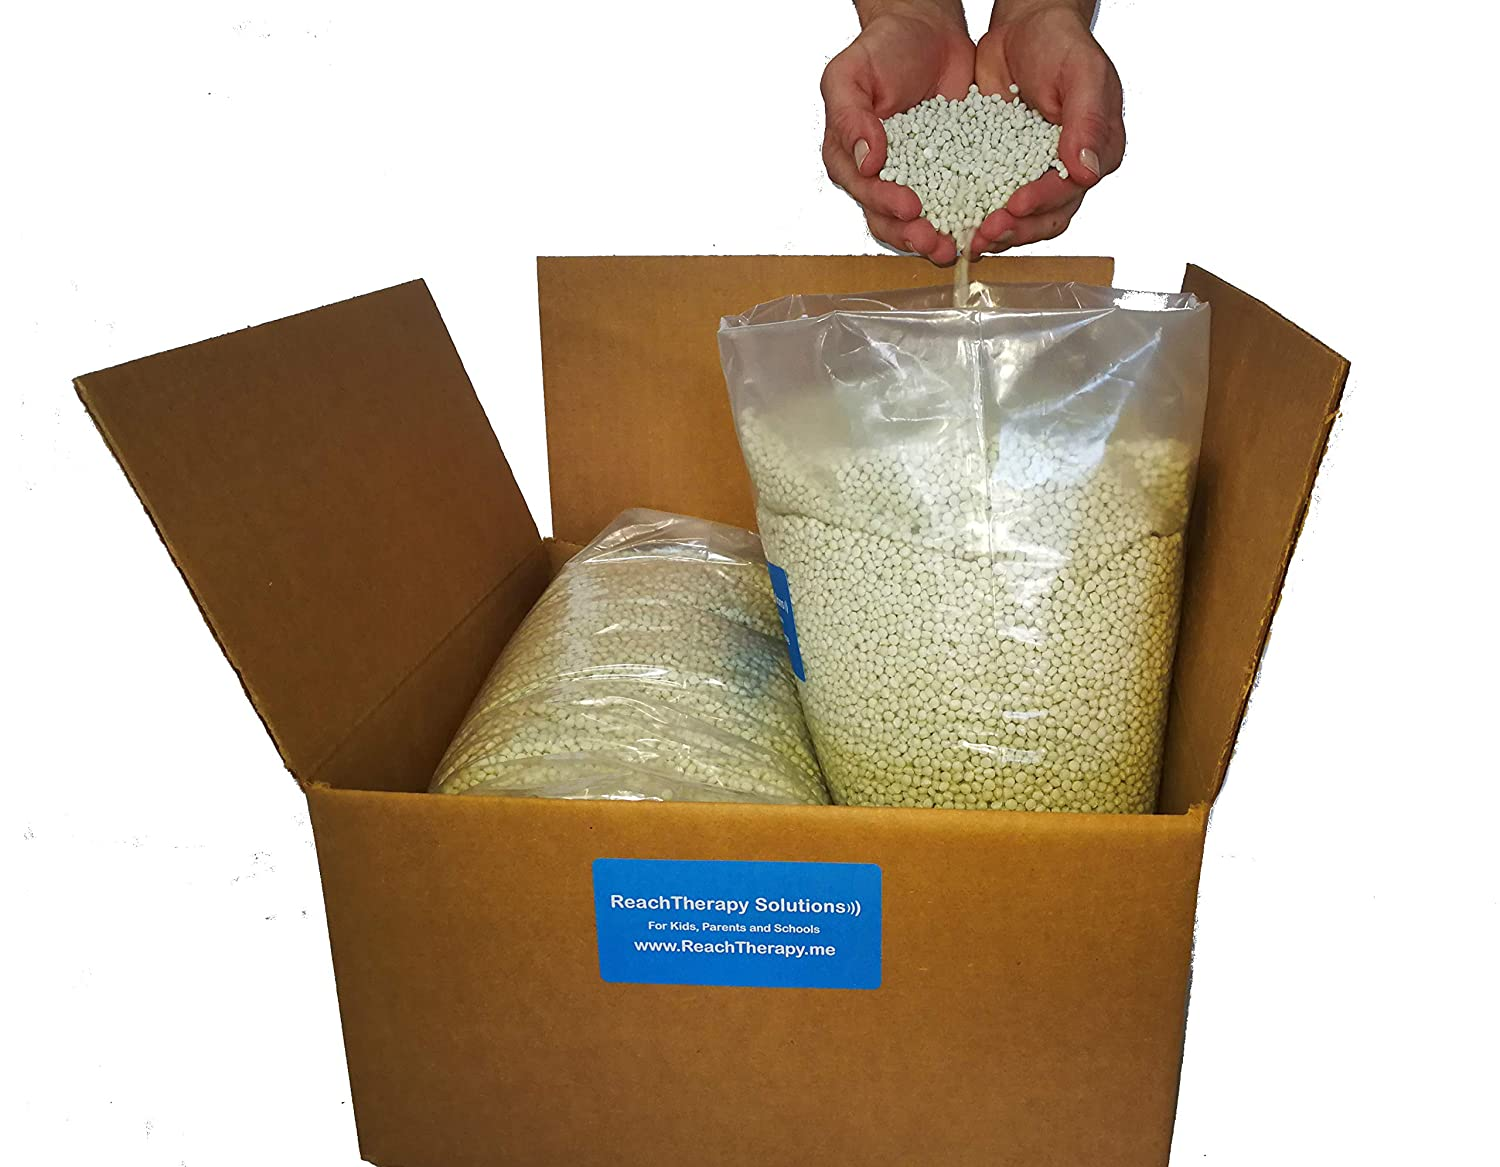 High Density Plastic Pellets for Weighted Blankets Weighted Blankets Corn Hole Shooting Bags & Draft Stoppers - Choose 5 lbs, 10 lbs 20 lbs (10 lbs) ReachTherapy Solutions 4337013680